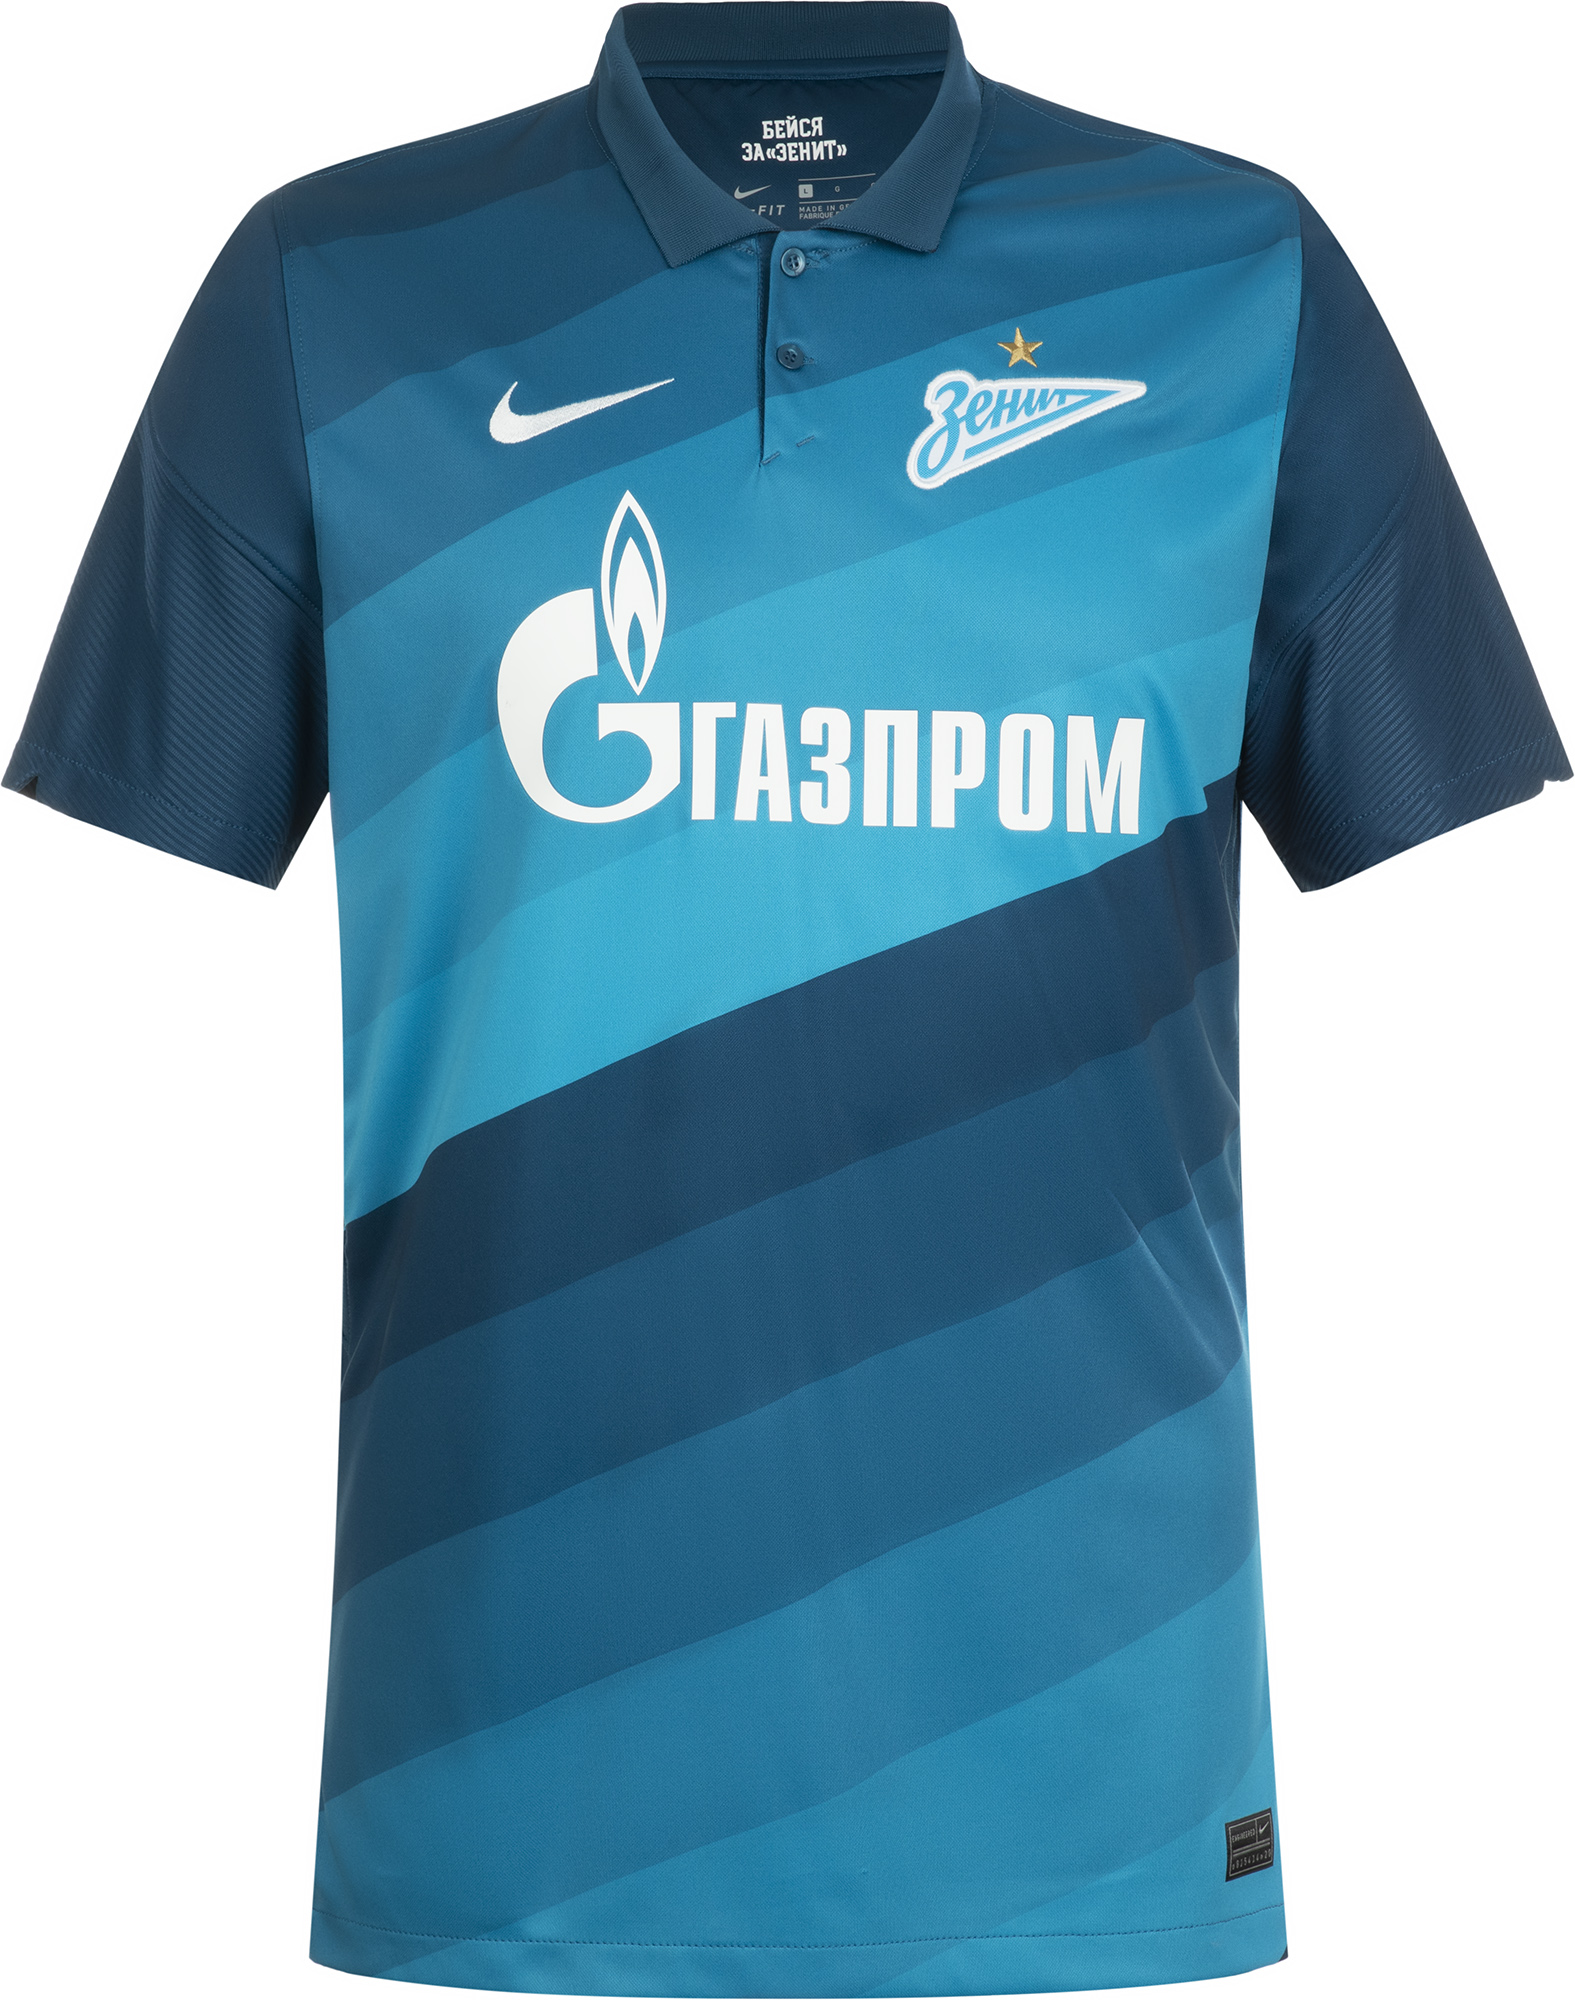 гетры nike barcelona stadium home 2019 20 Nike Футболка мужская Nike Zenit Saint Petersburg 2020/21 Stadium Home, размер 52-54